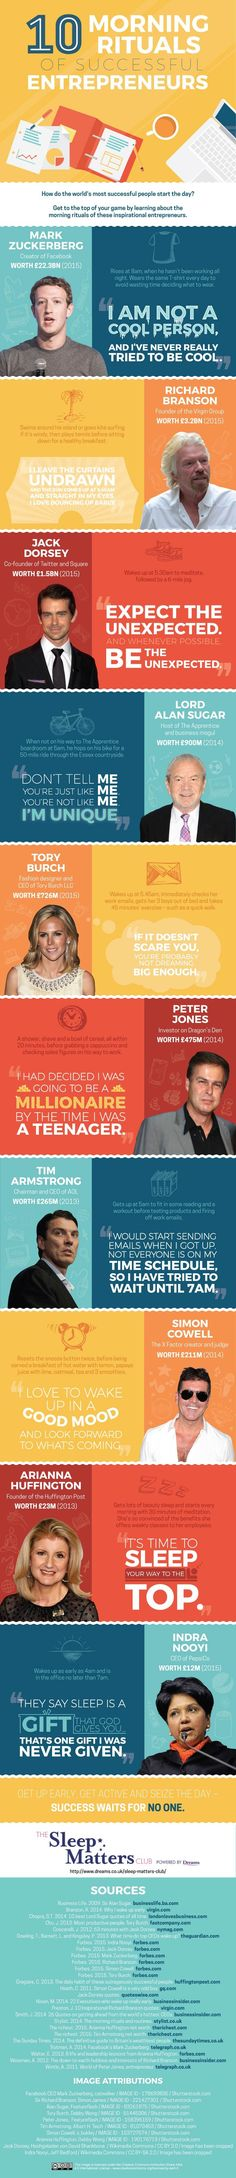 10 Morning Rituals of Successful Entrepreneurs, an infographic from The Sleep Matters Club.